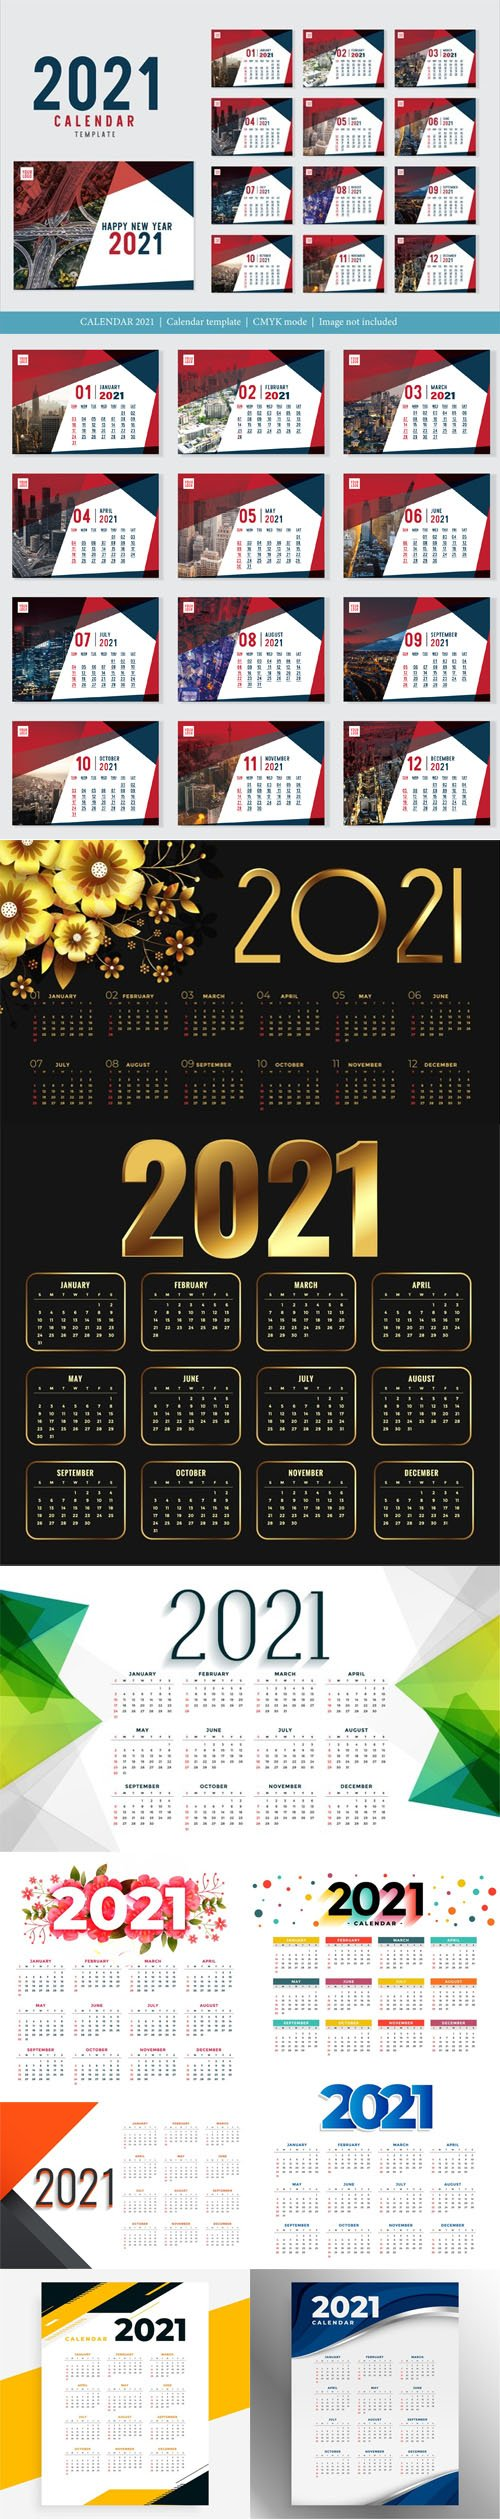 10 Modern New Year 2021 Calendars Collection in Vector